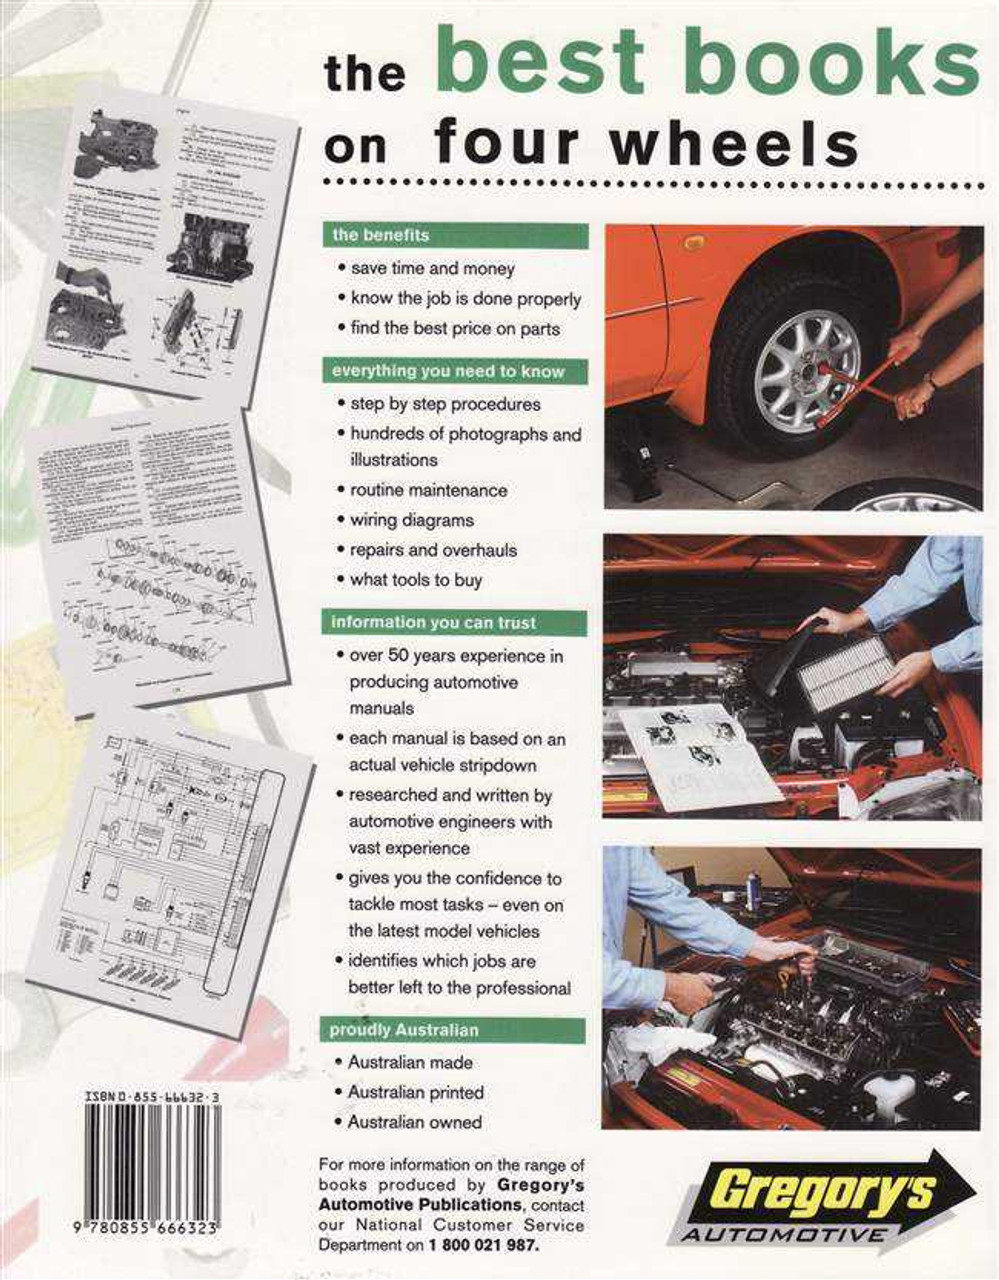 Mitsubishi Sigma GH, GJ Series 1980 - 1983 Workshop Manual on